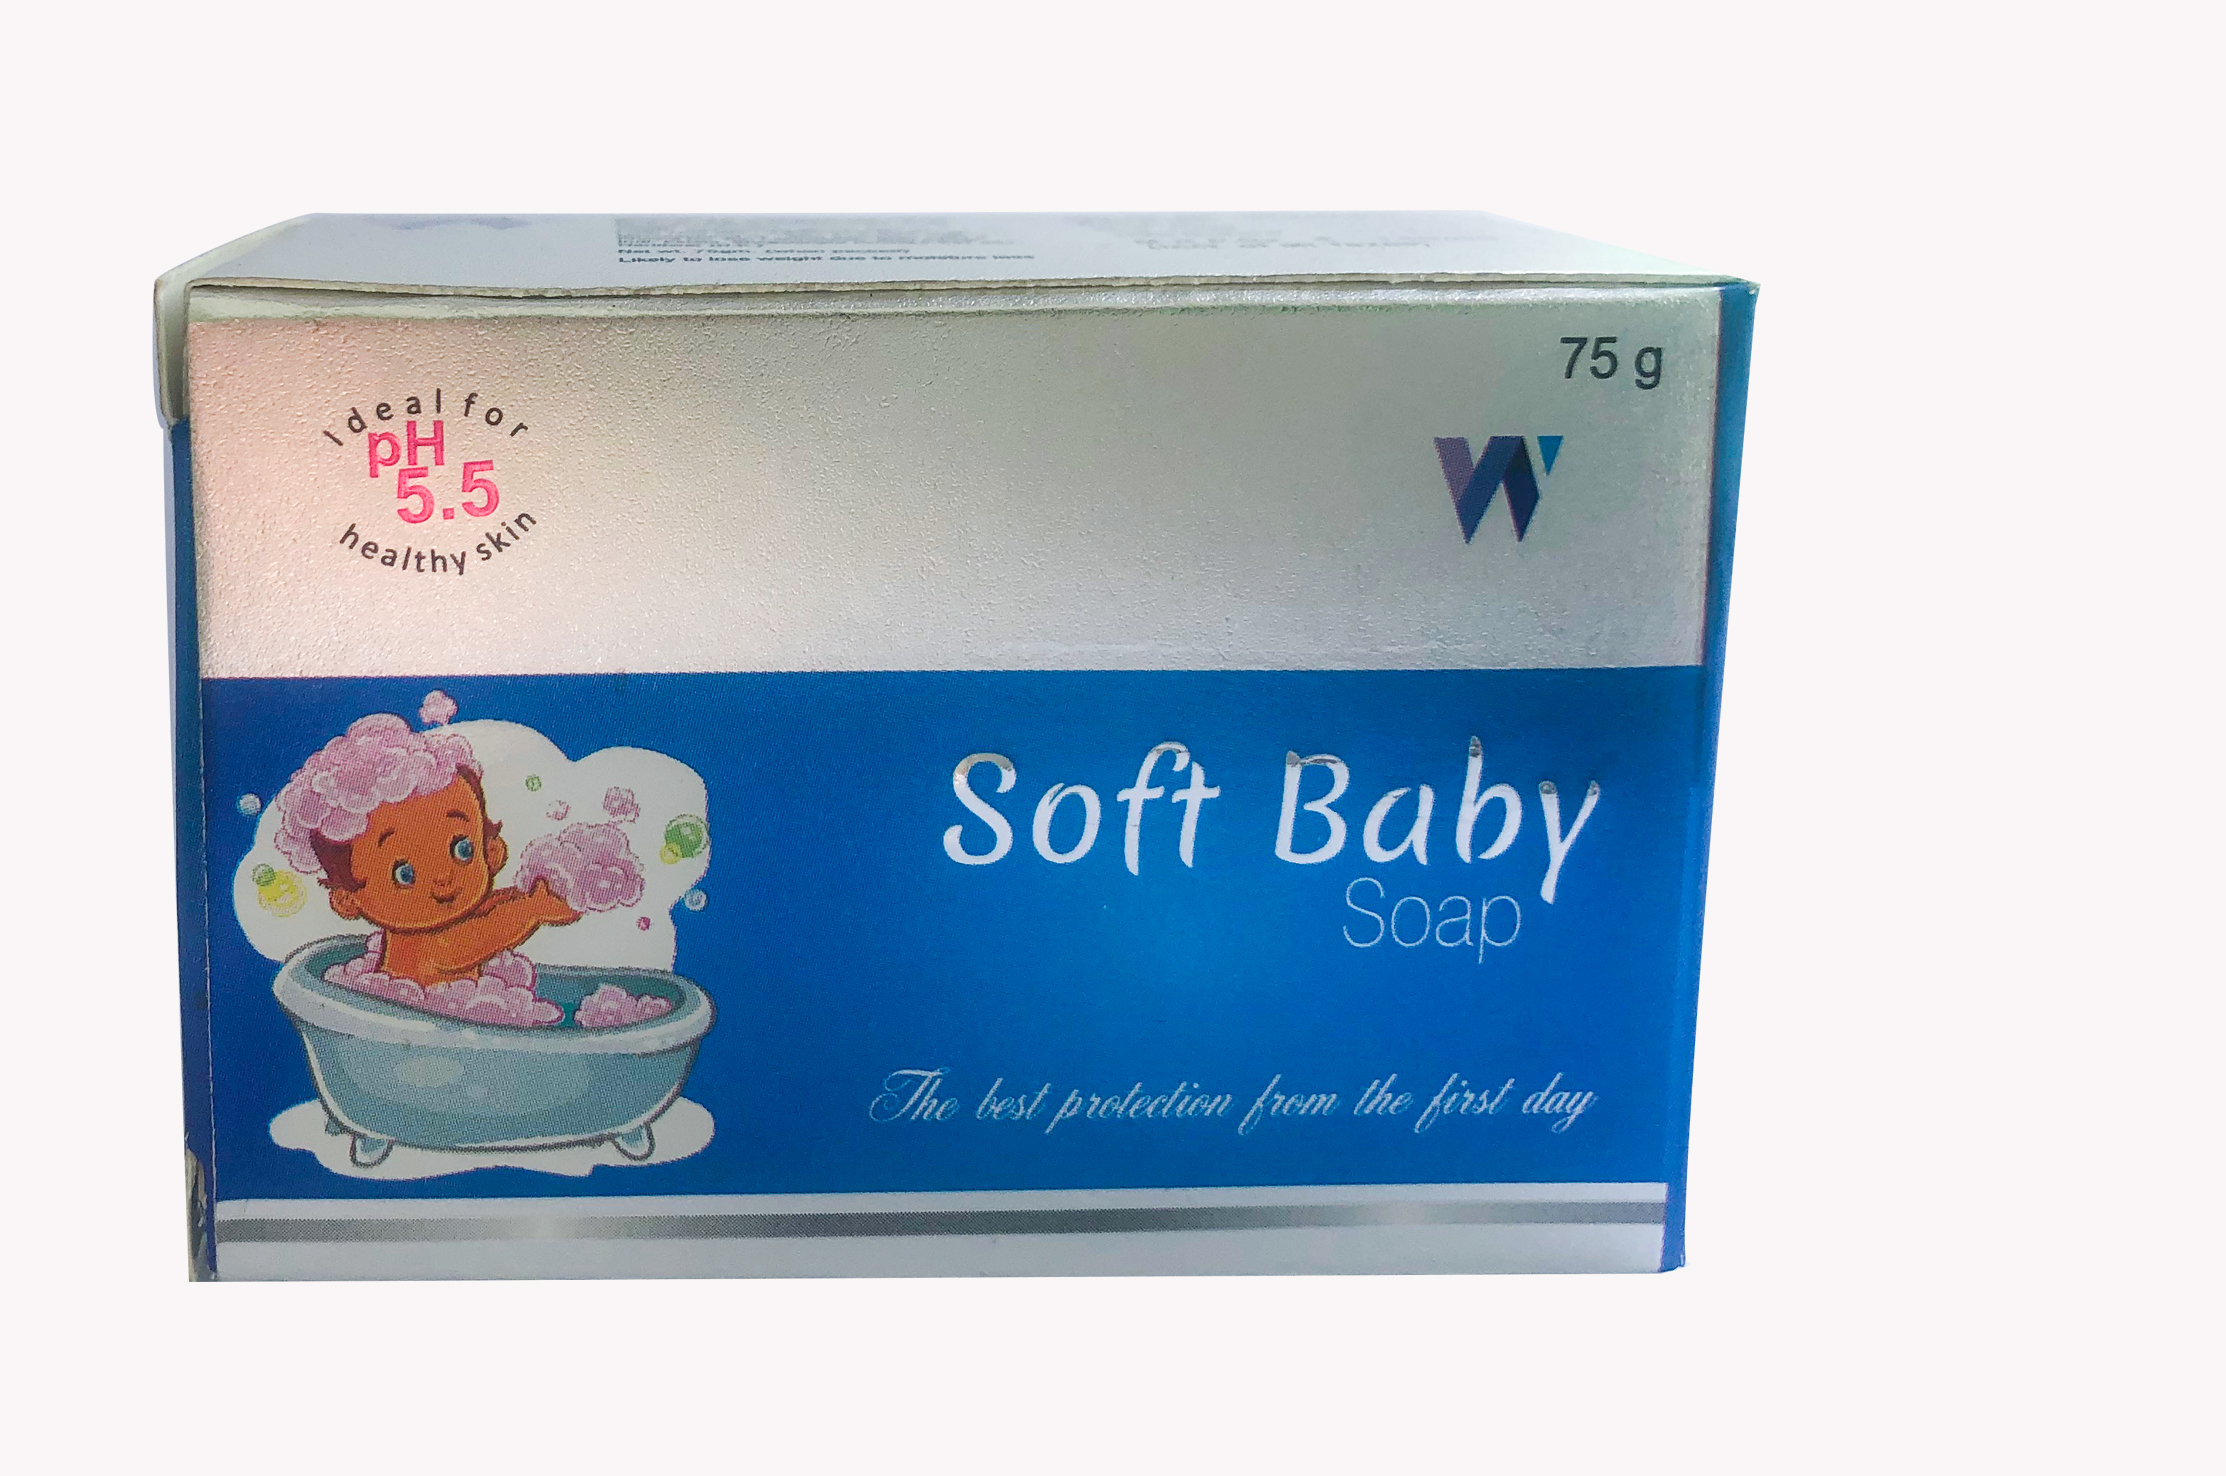 Soft Baby Soap